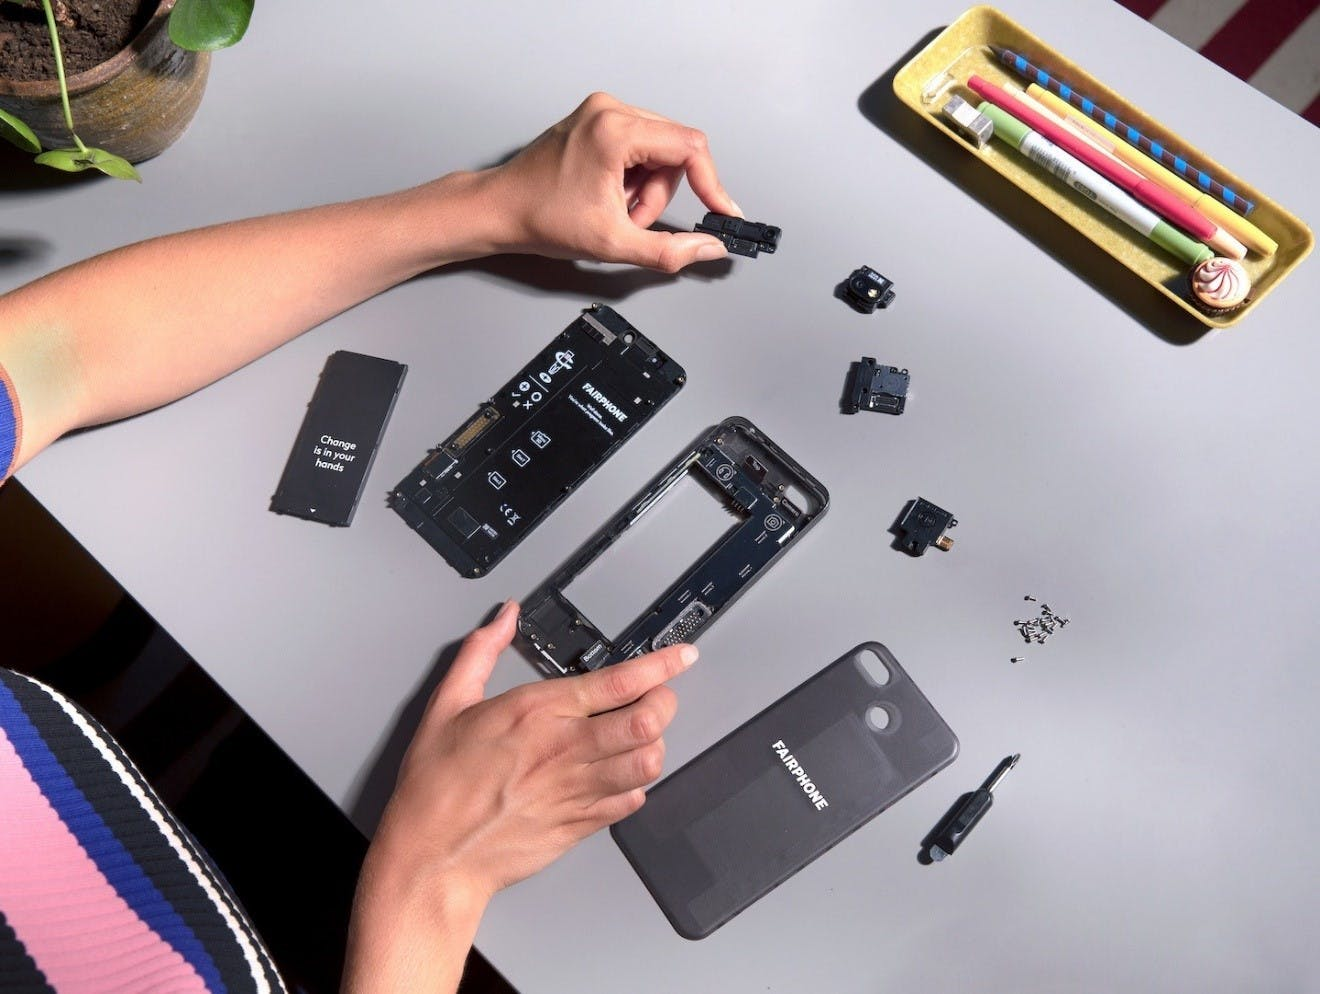 A person dismantling their sustainable and ethical smartphone by Fairphone.